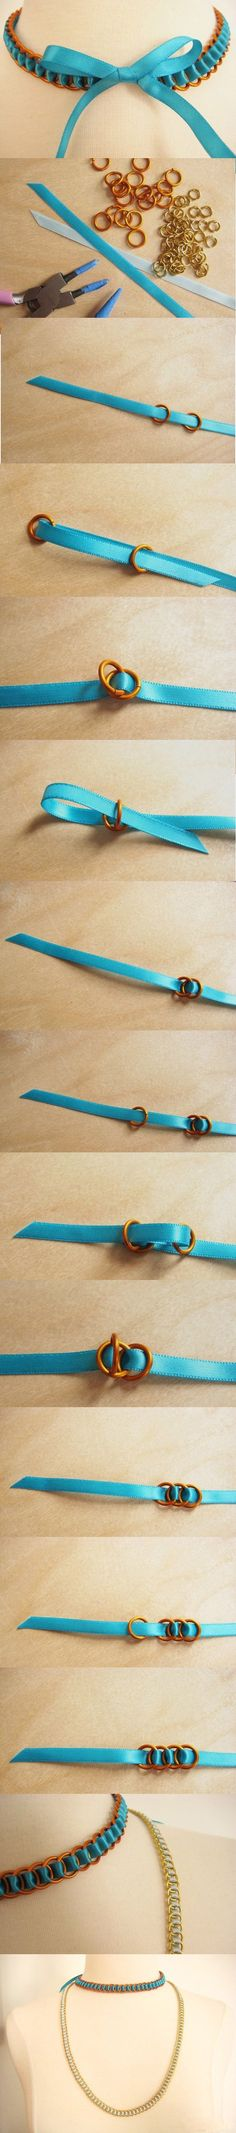 DIY Fashion: Amazing Necklace